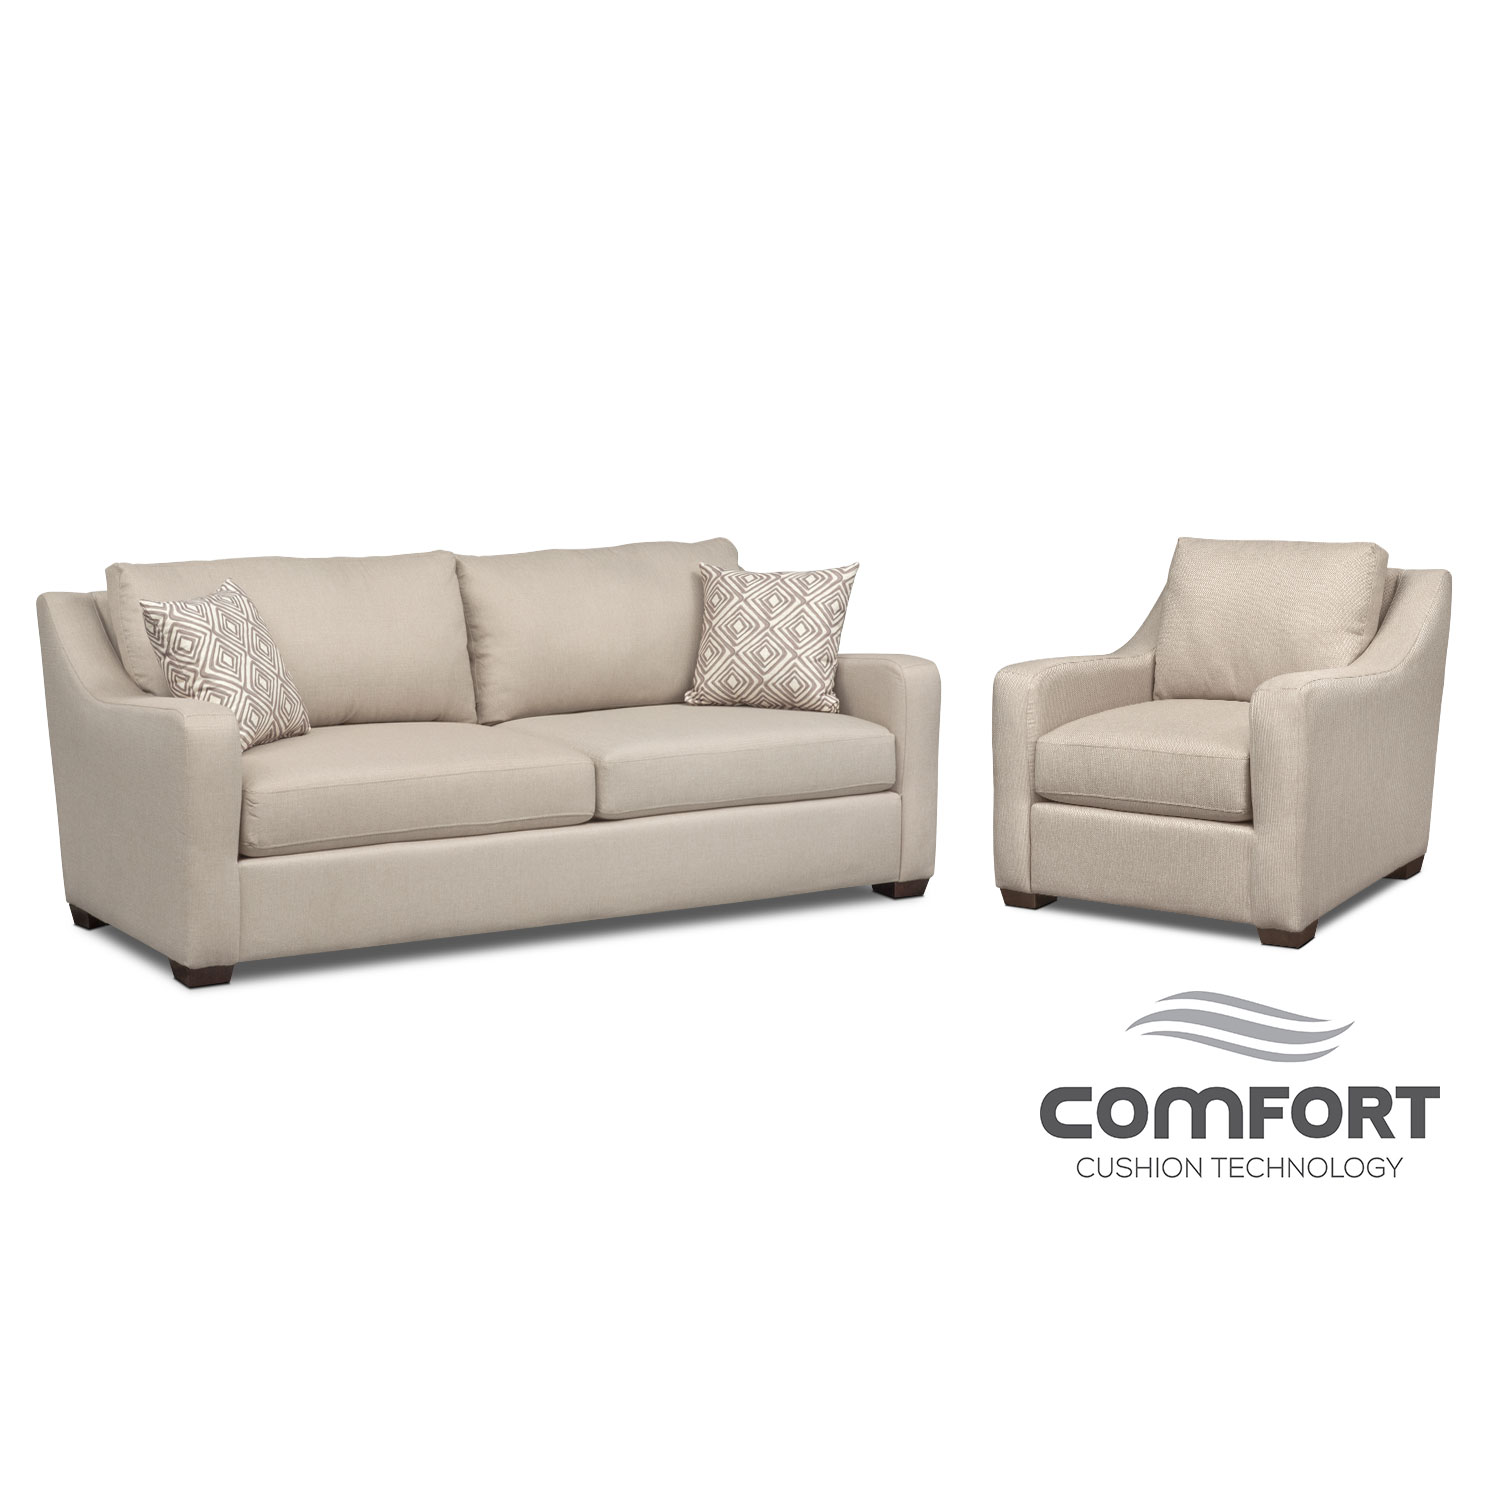 Living Room Furniture - Jules Comfort Sofa and Chair Set - Cream